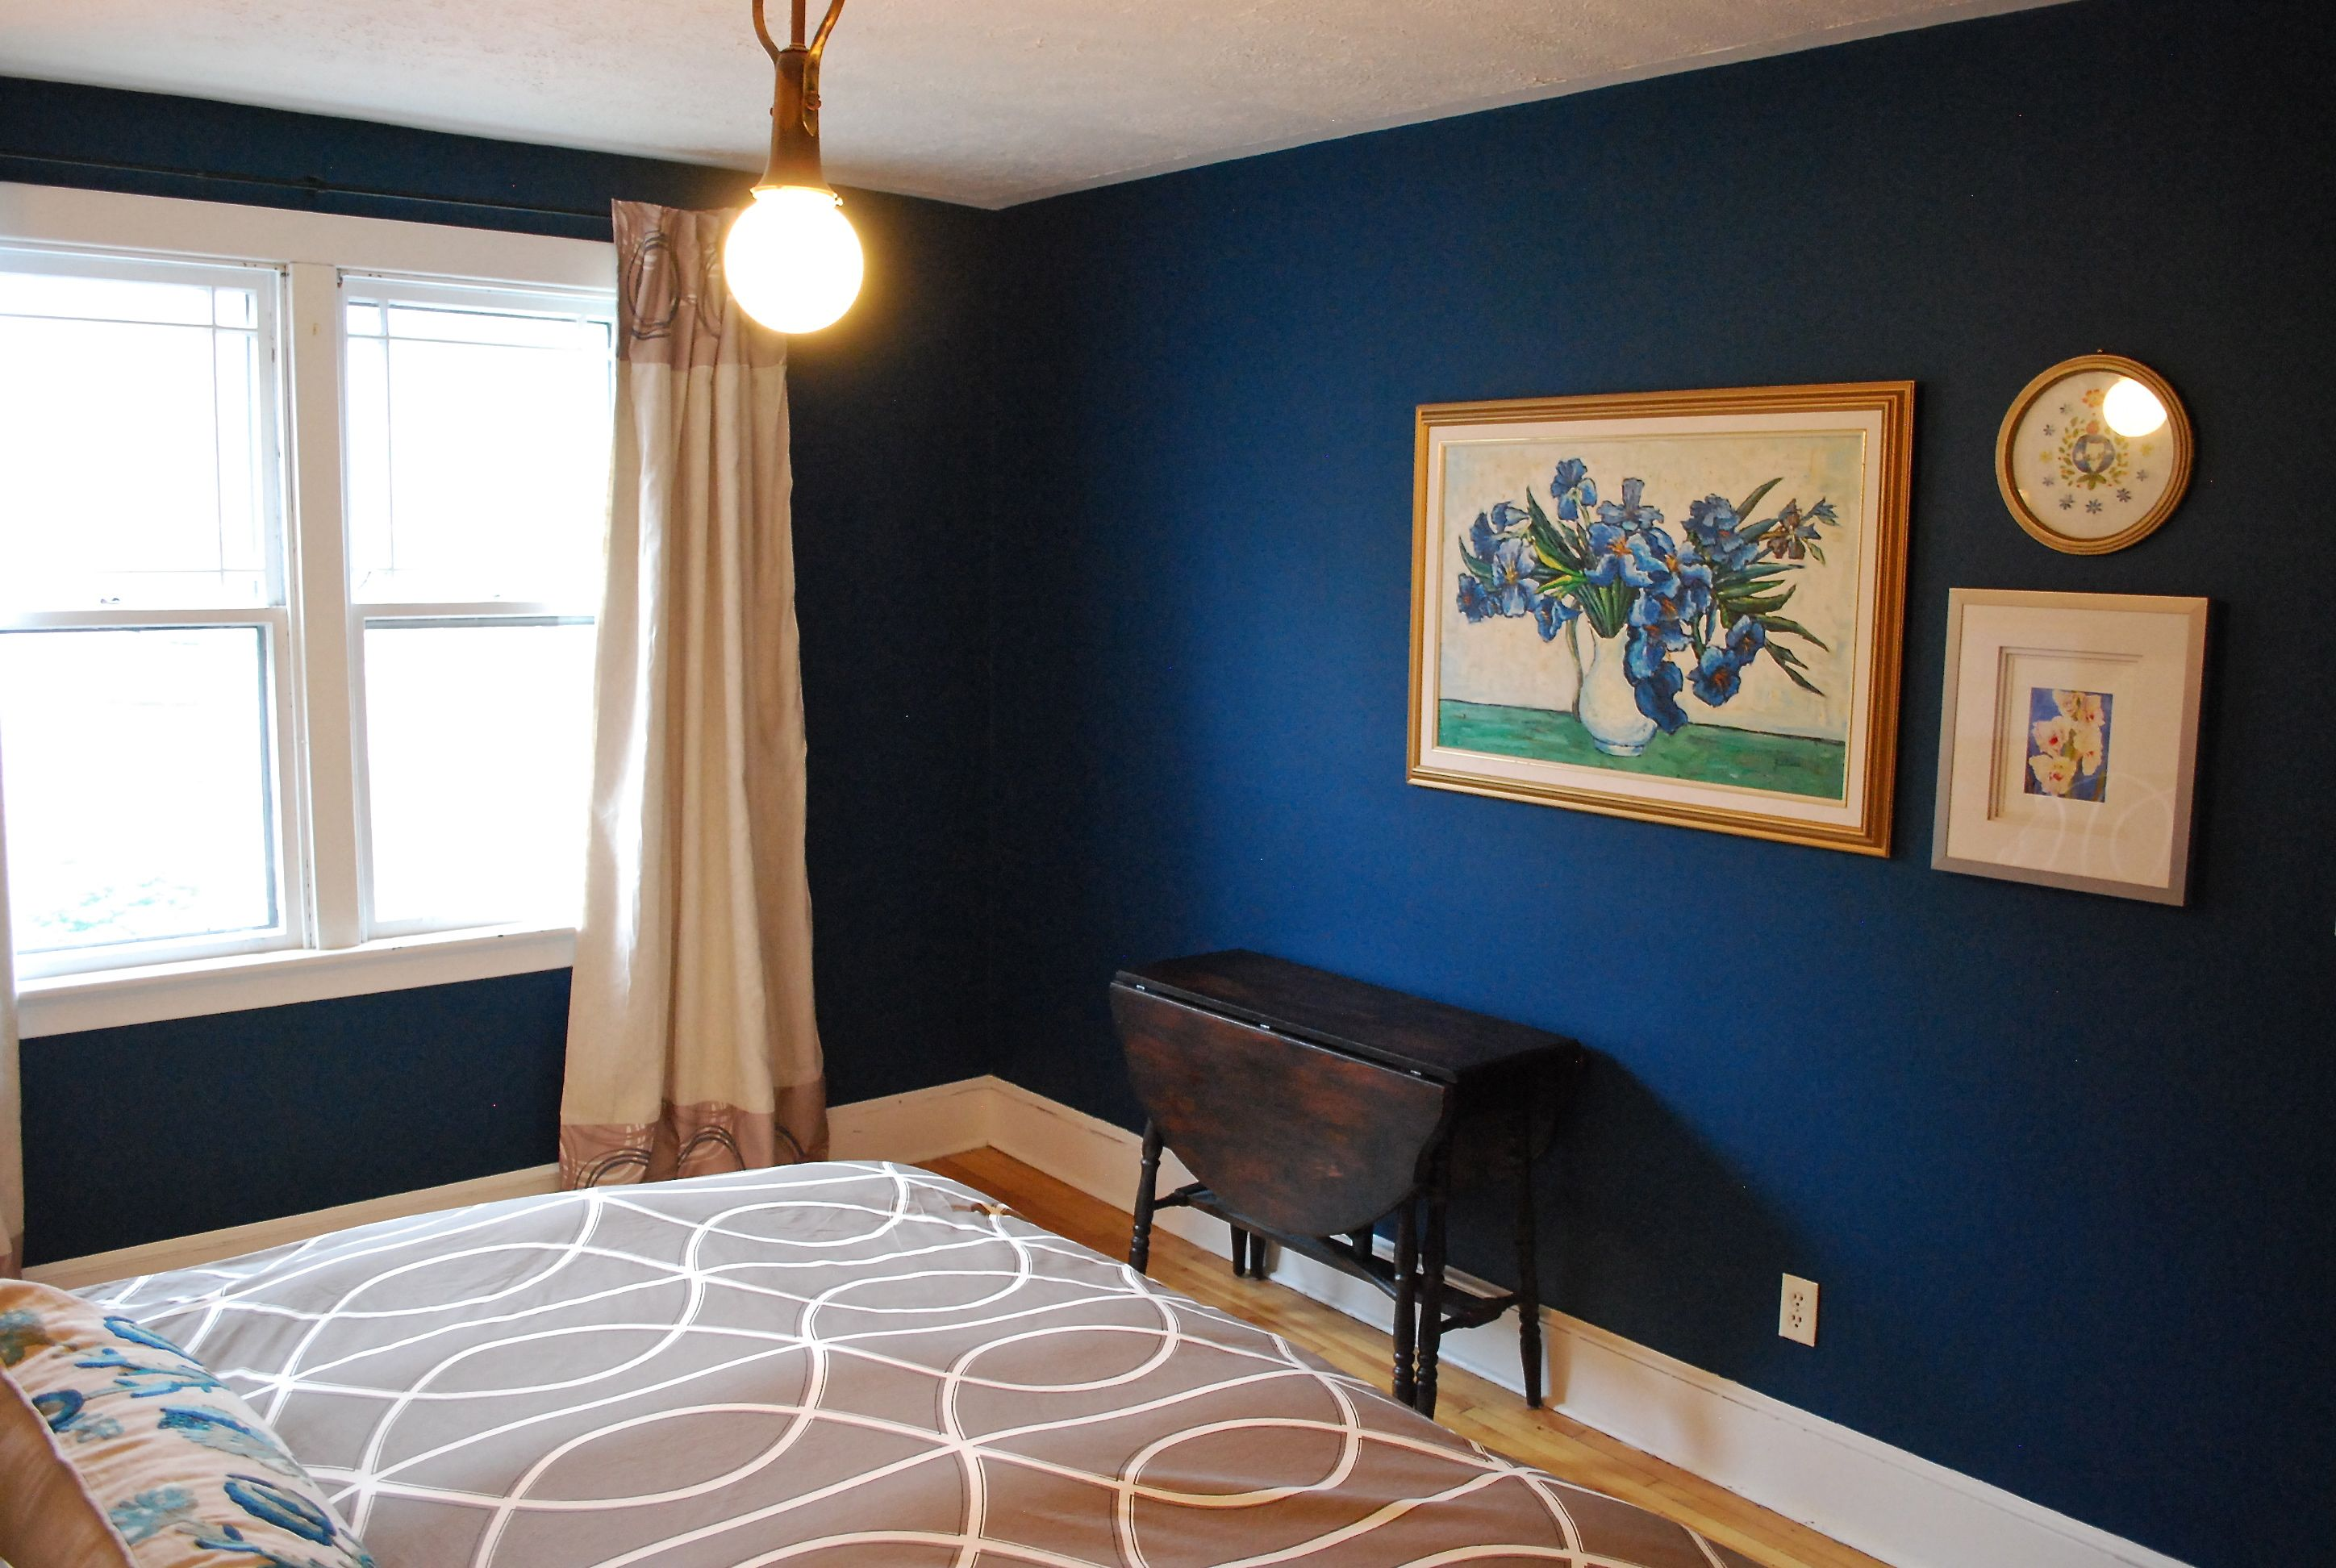 The Influence Of A Bud Vase Or Feeling Blue Blue Interior Design Blue Home Decor Blue Painted Walls